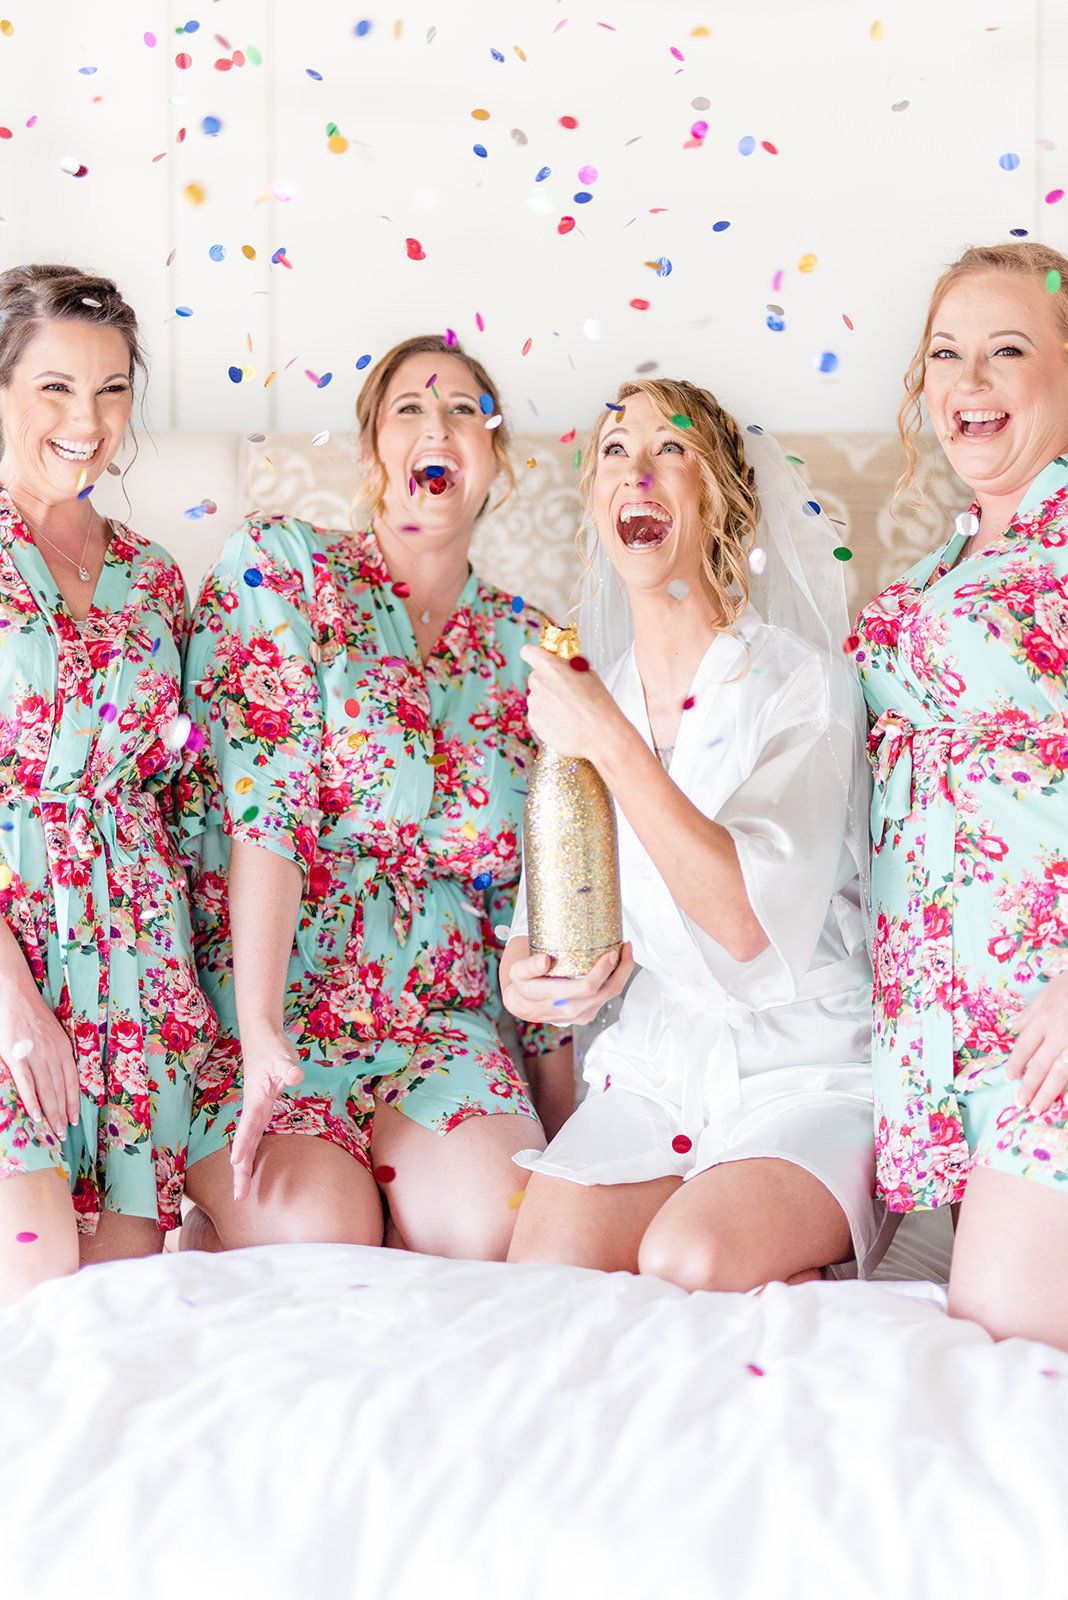 Bride and bridesmaids pop confetti.